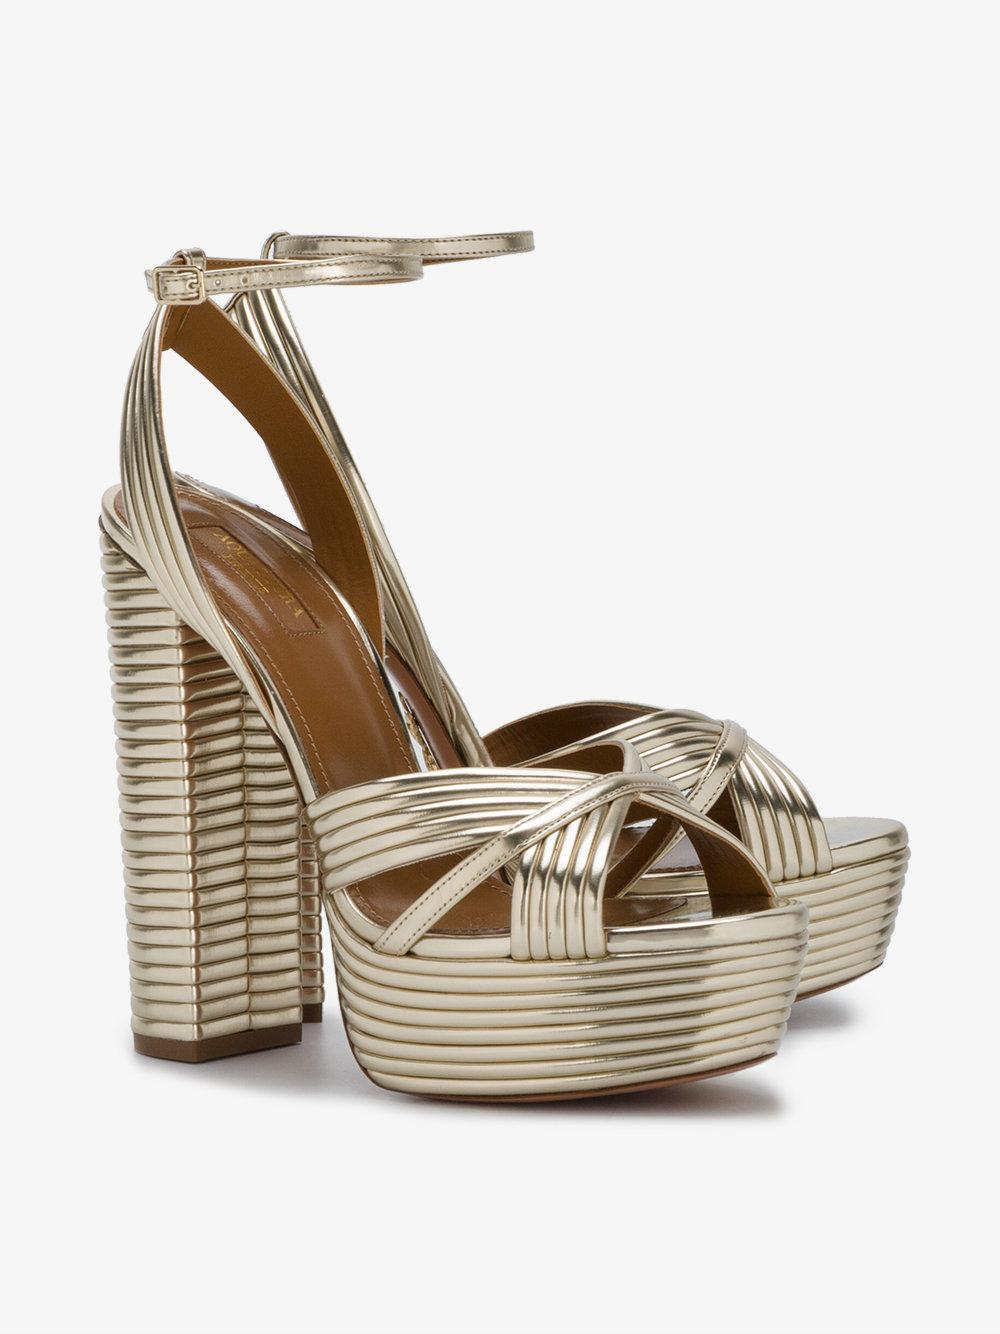 7d62768cab1 Lyst - Aquazzura Gold Sundance 140 Platform Sandals in Metallic